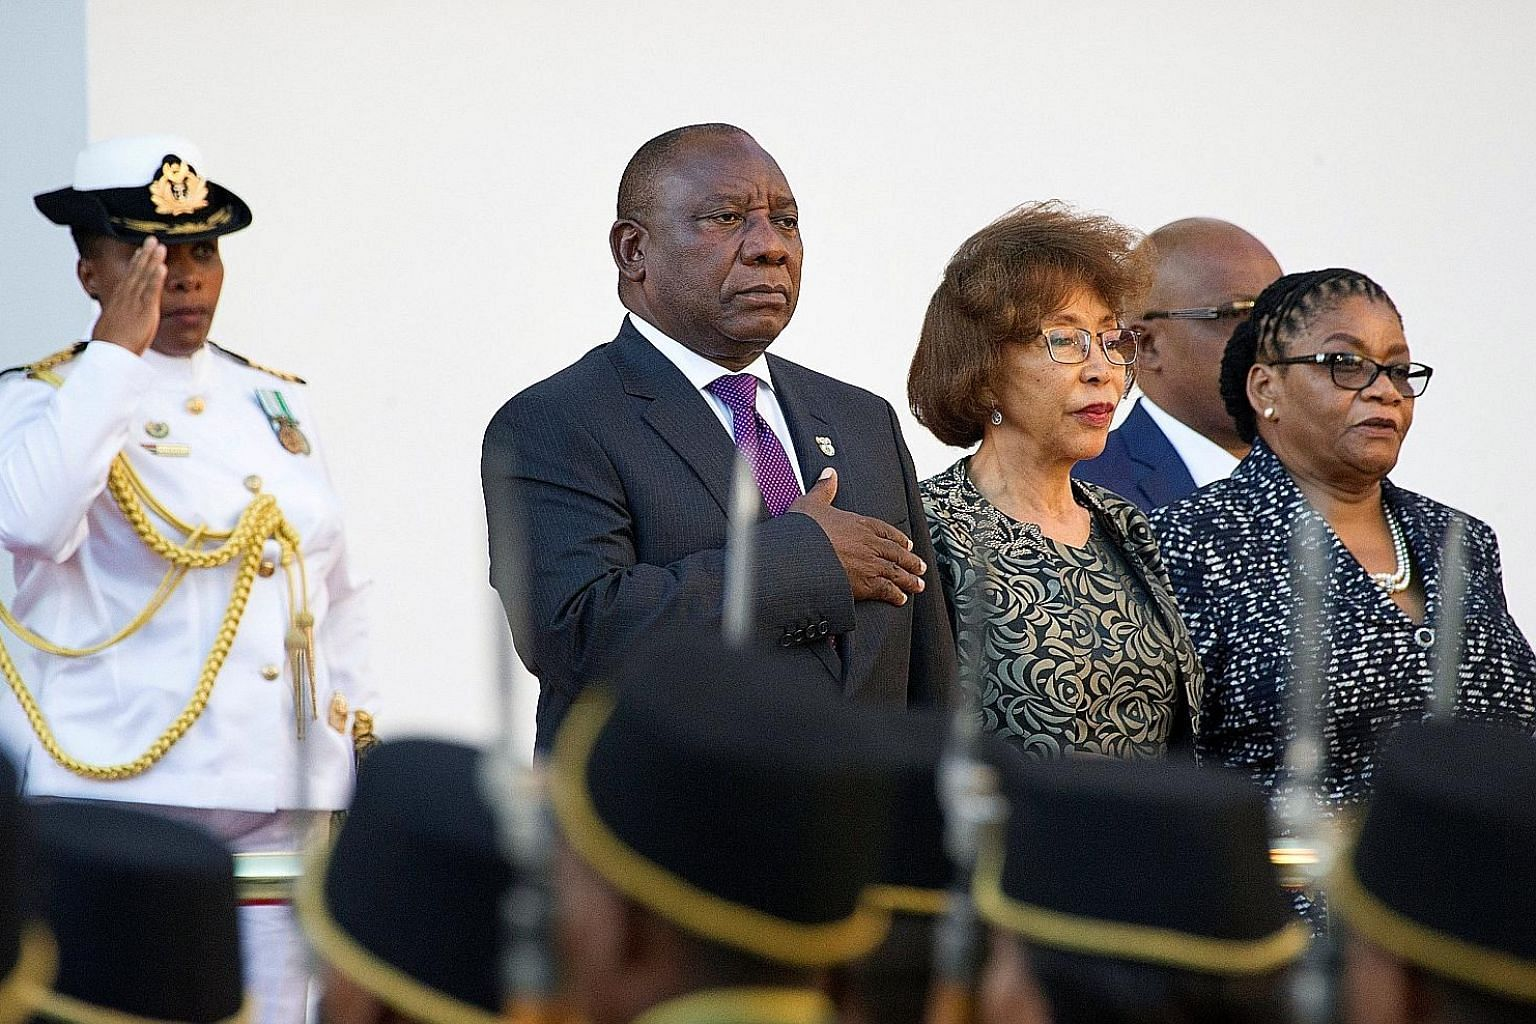 President Cyril Ramaphosa taking part in the national salute as he arrives to deliver his State of the Nation address in Cape Town on Friday. Among his most pressing priorities will be to select a deputy president and reshuffle the Cabinet.